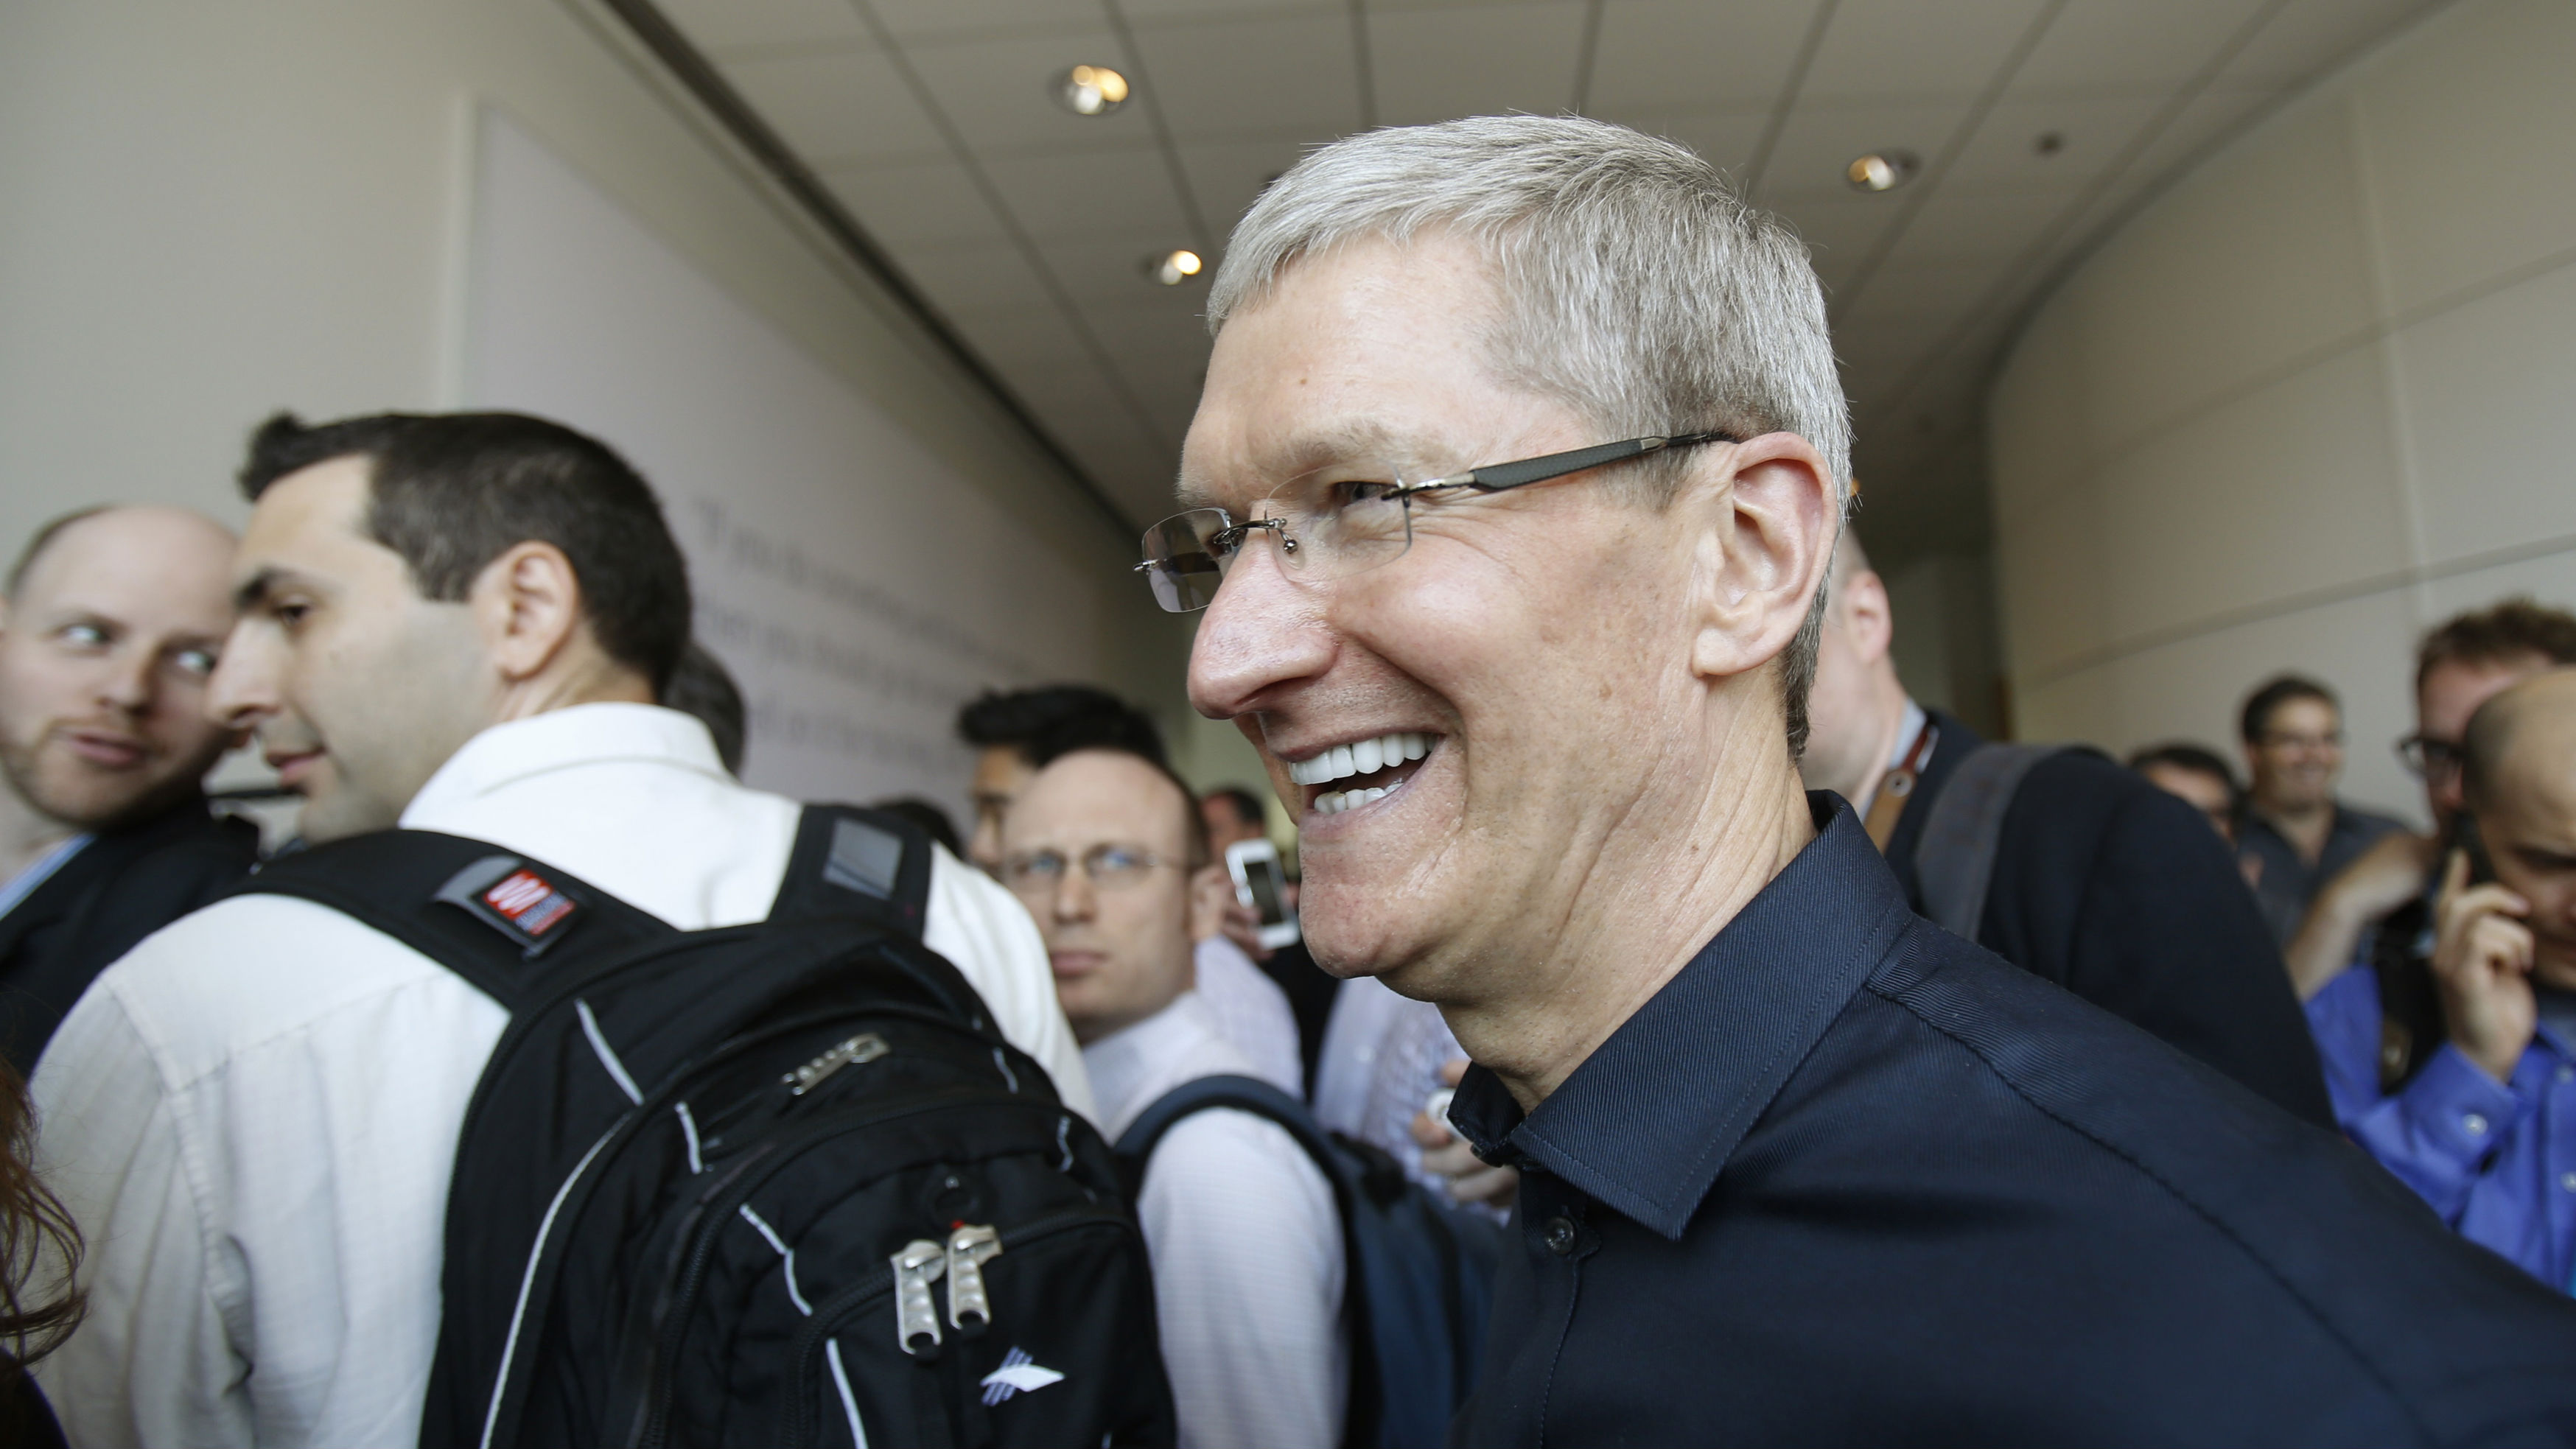 Apple Inc CEO Tim Cook walks into a display area of the company's new products after Apple Inc's media event in Cupertino, California September 10, 2013. REUTERS/Stephen Lam